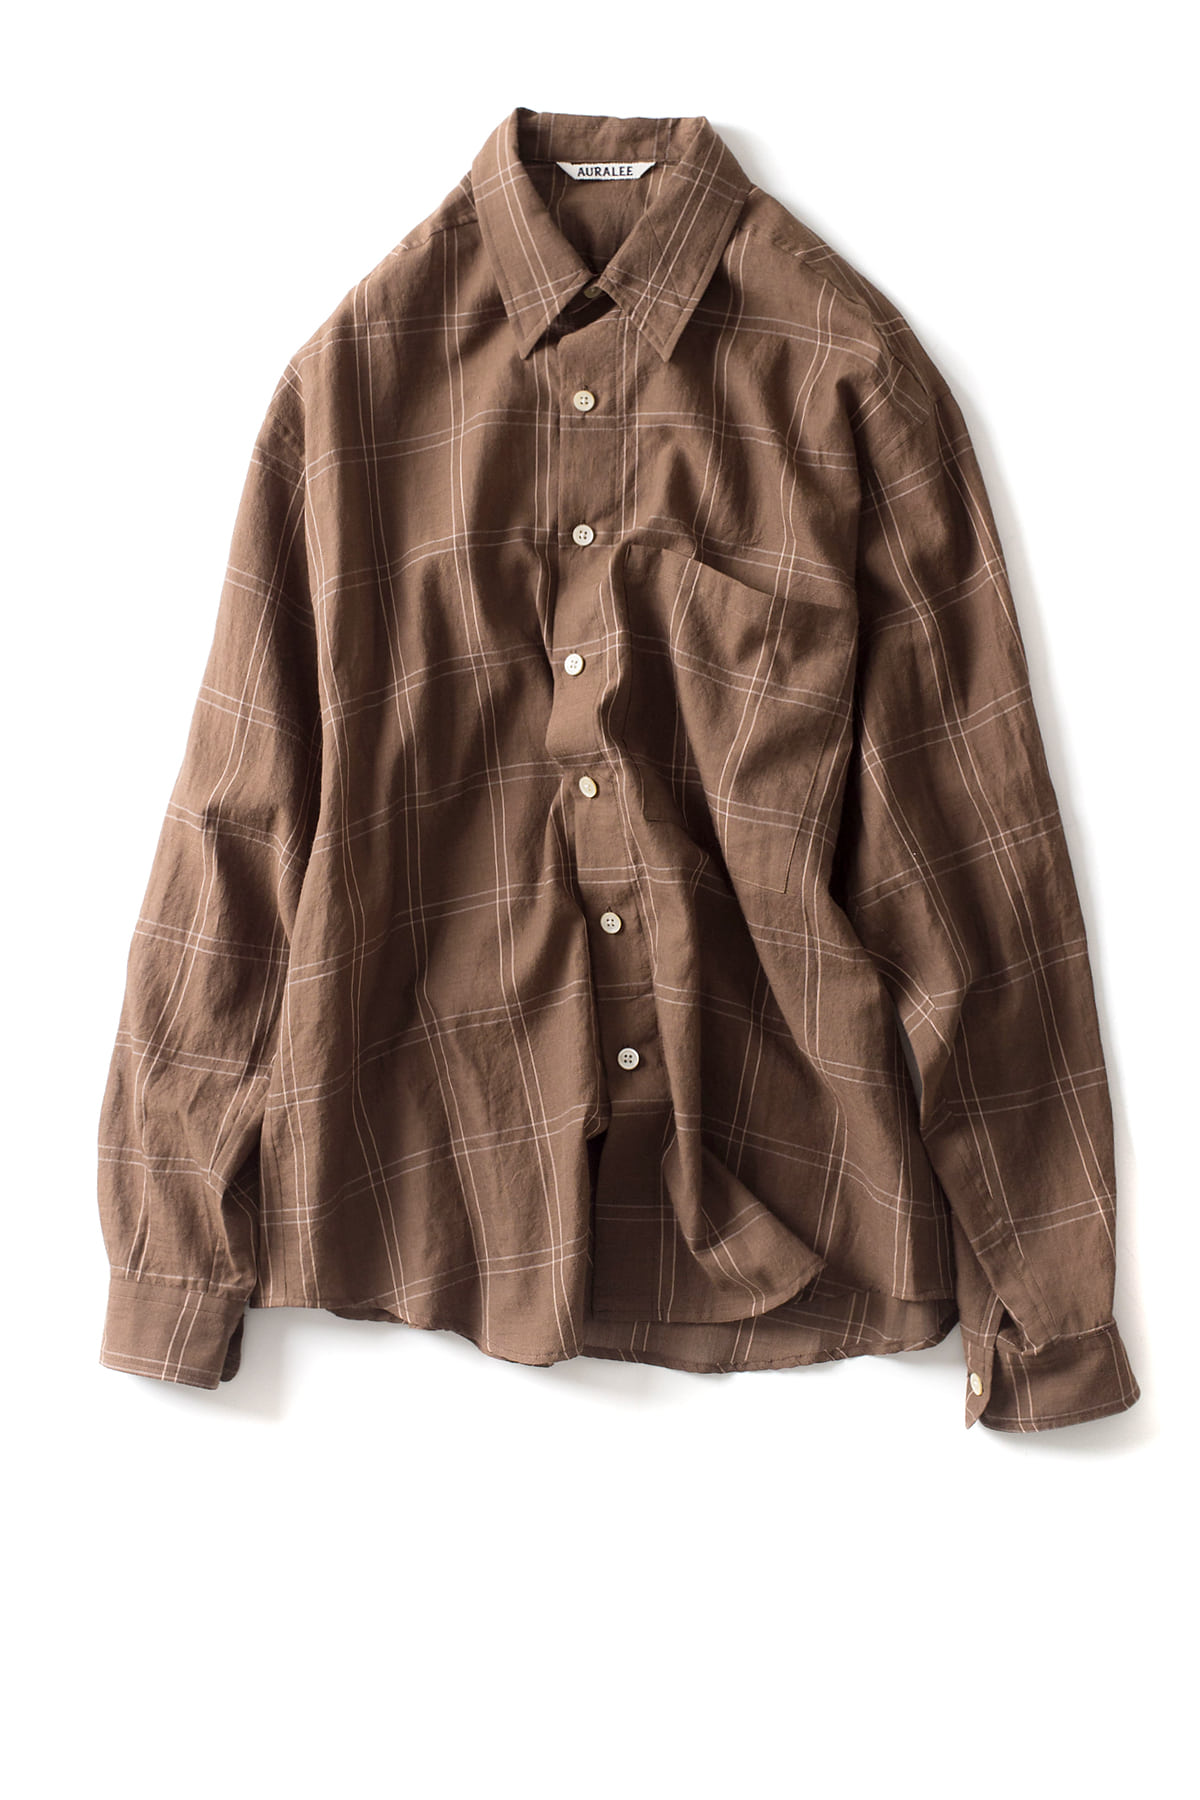 Auralee : Super Light Check Big Shirts (Brown)